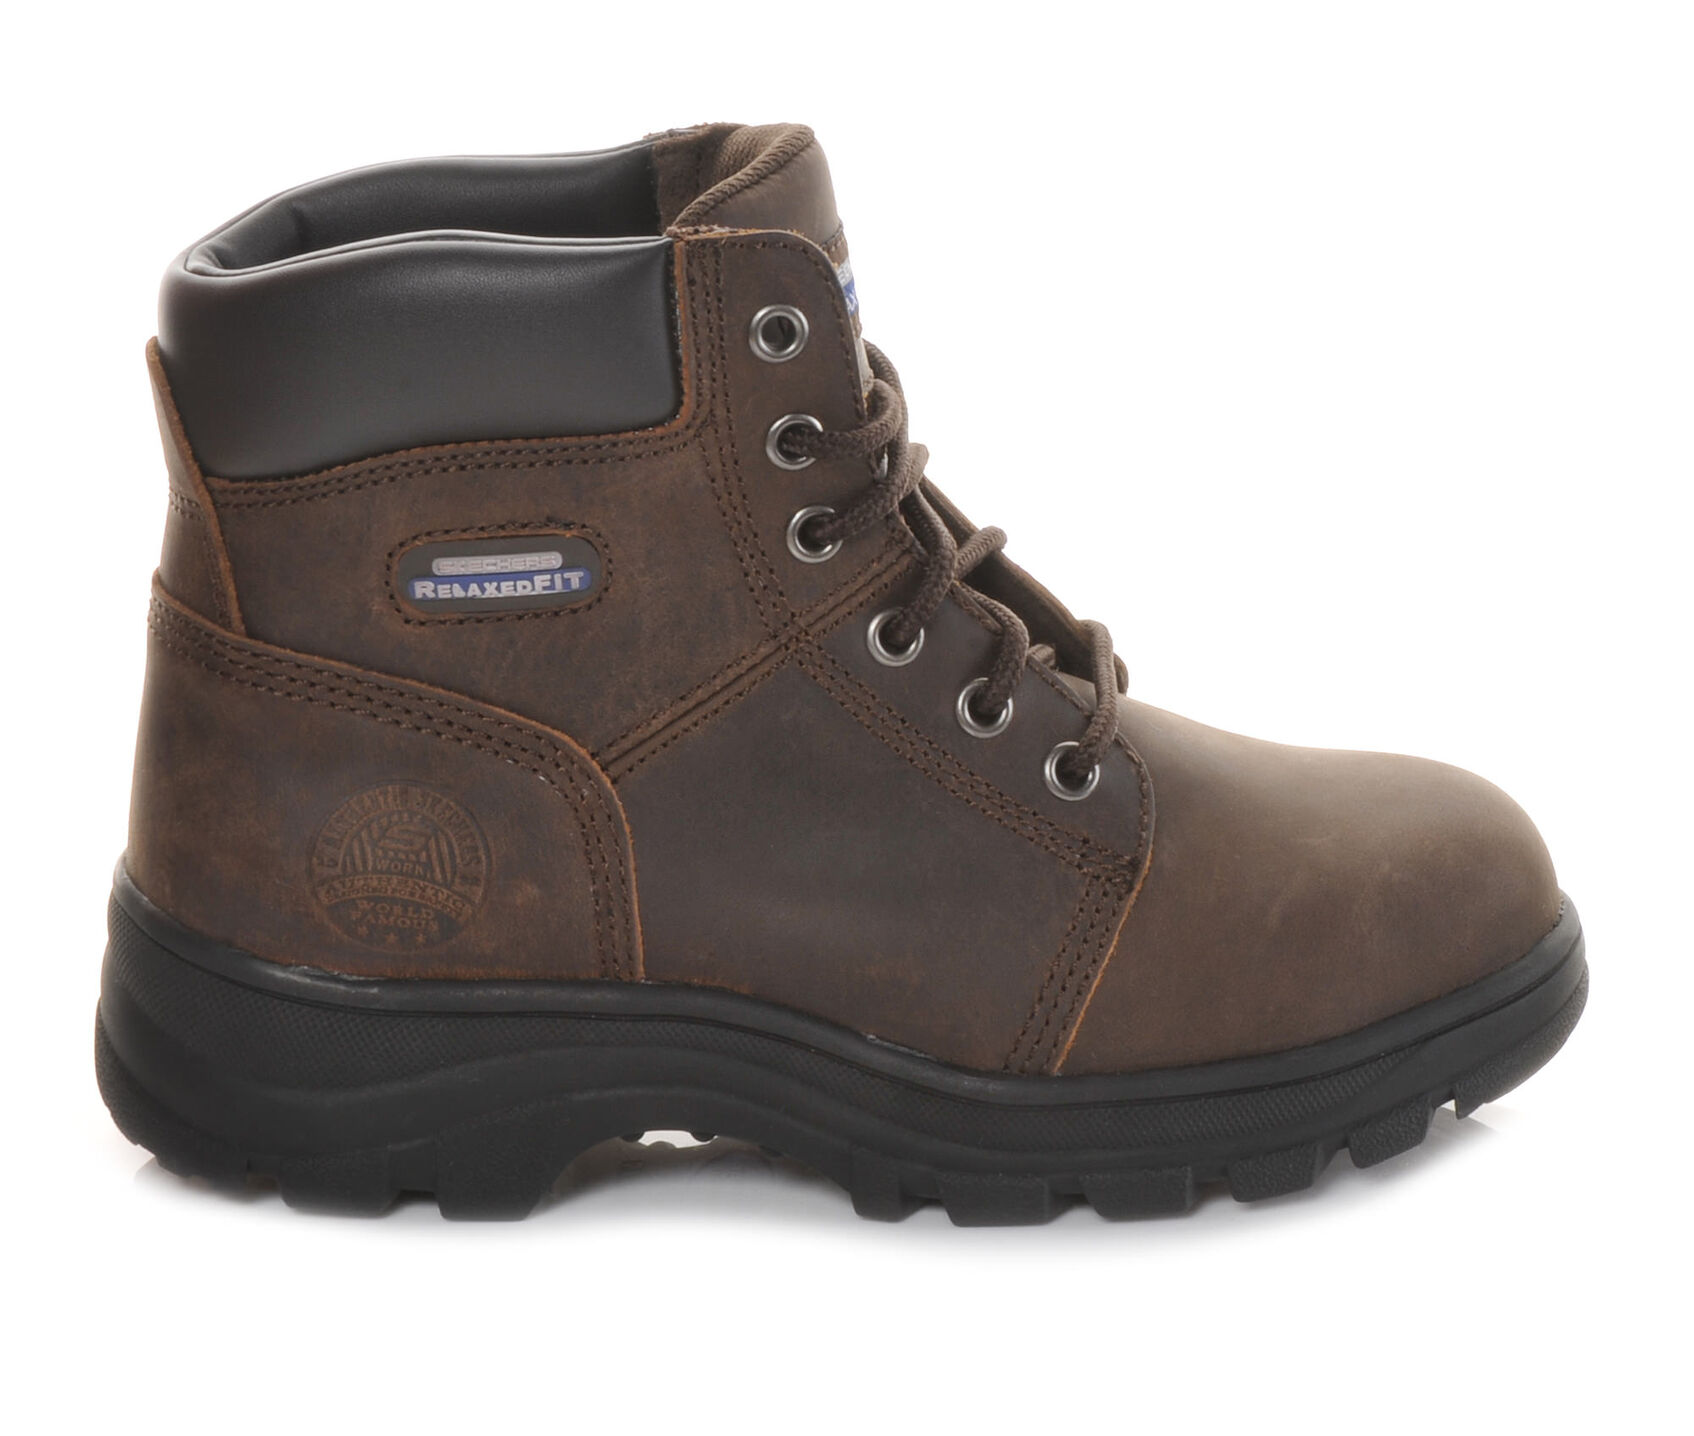 skechers boots womens. images skechers boots womens o